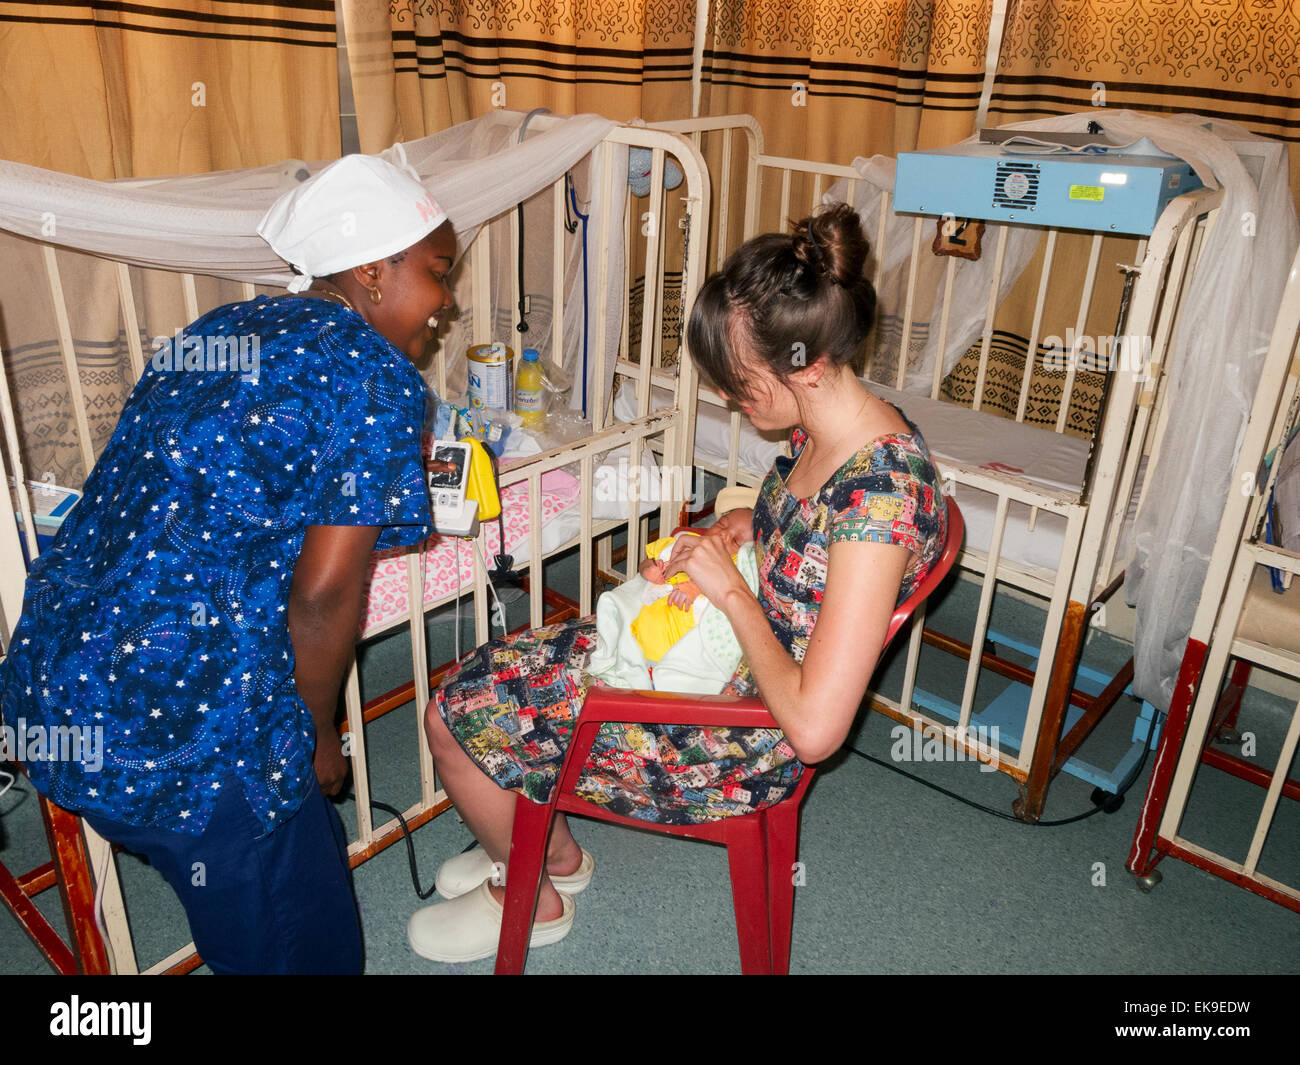 A congolese nurse and western health aid worker feeding a baby, Heal Africa Hospital; Goma, Democratic Republic - Stock Image